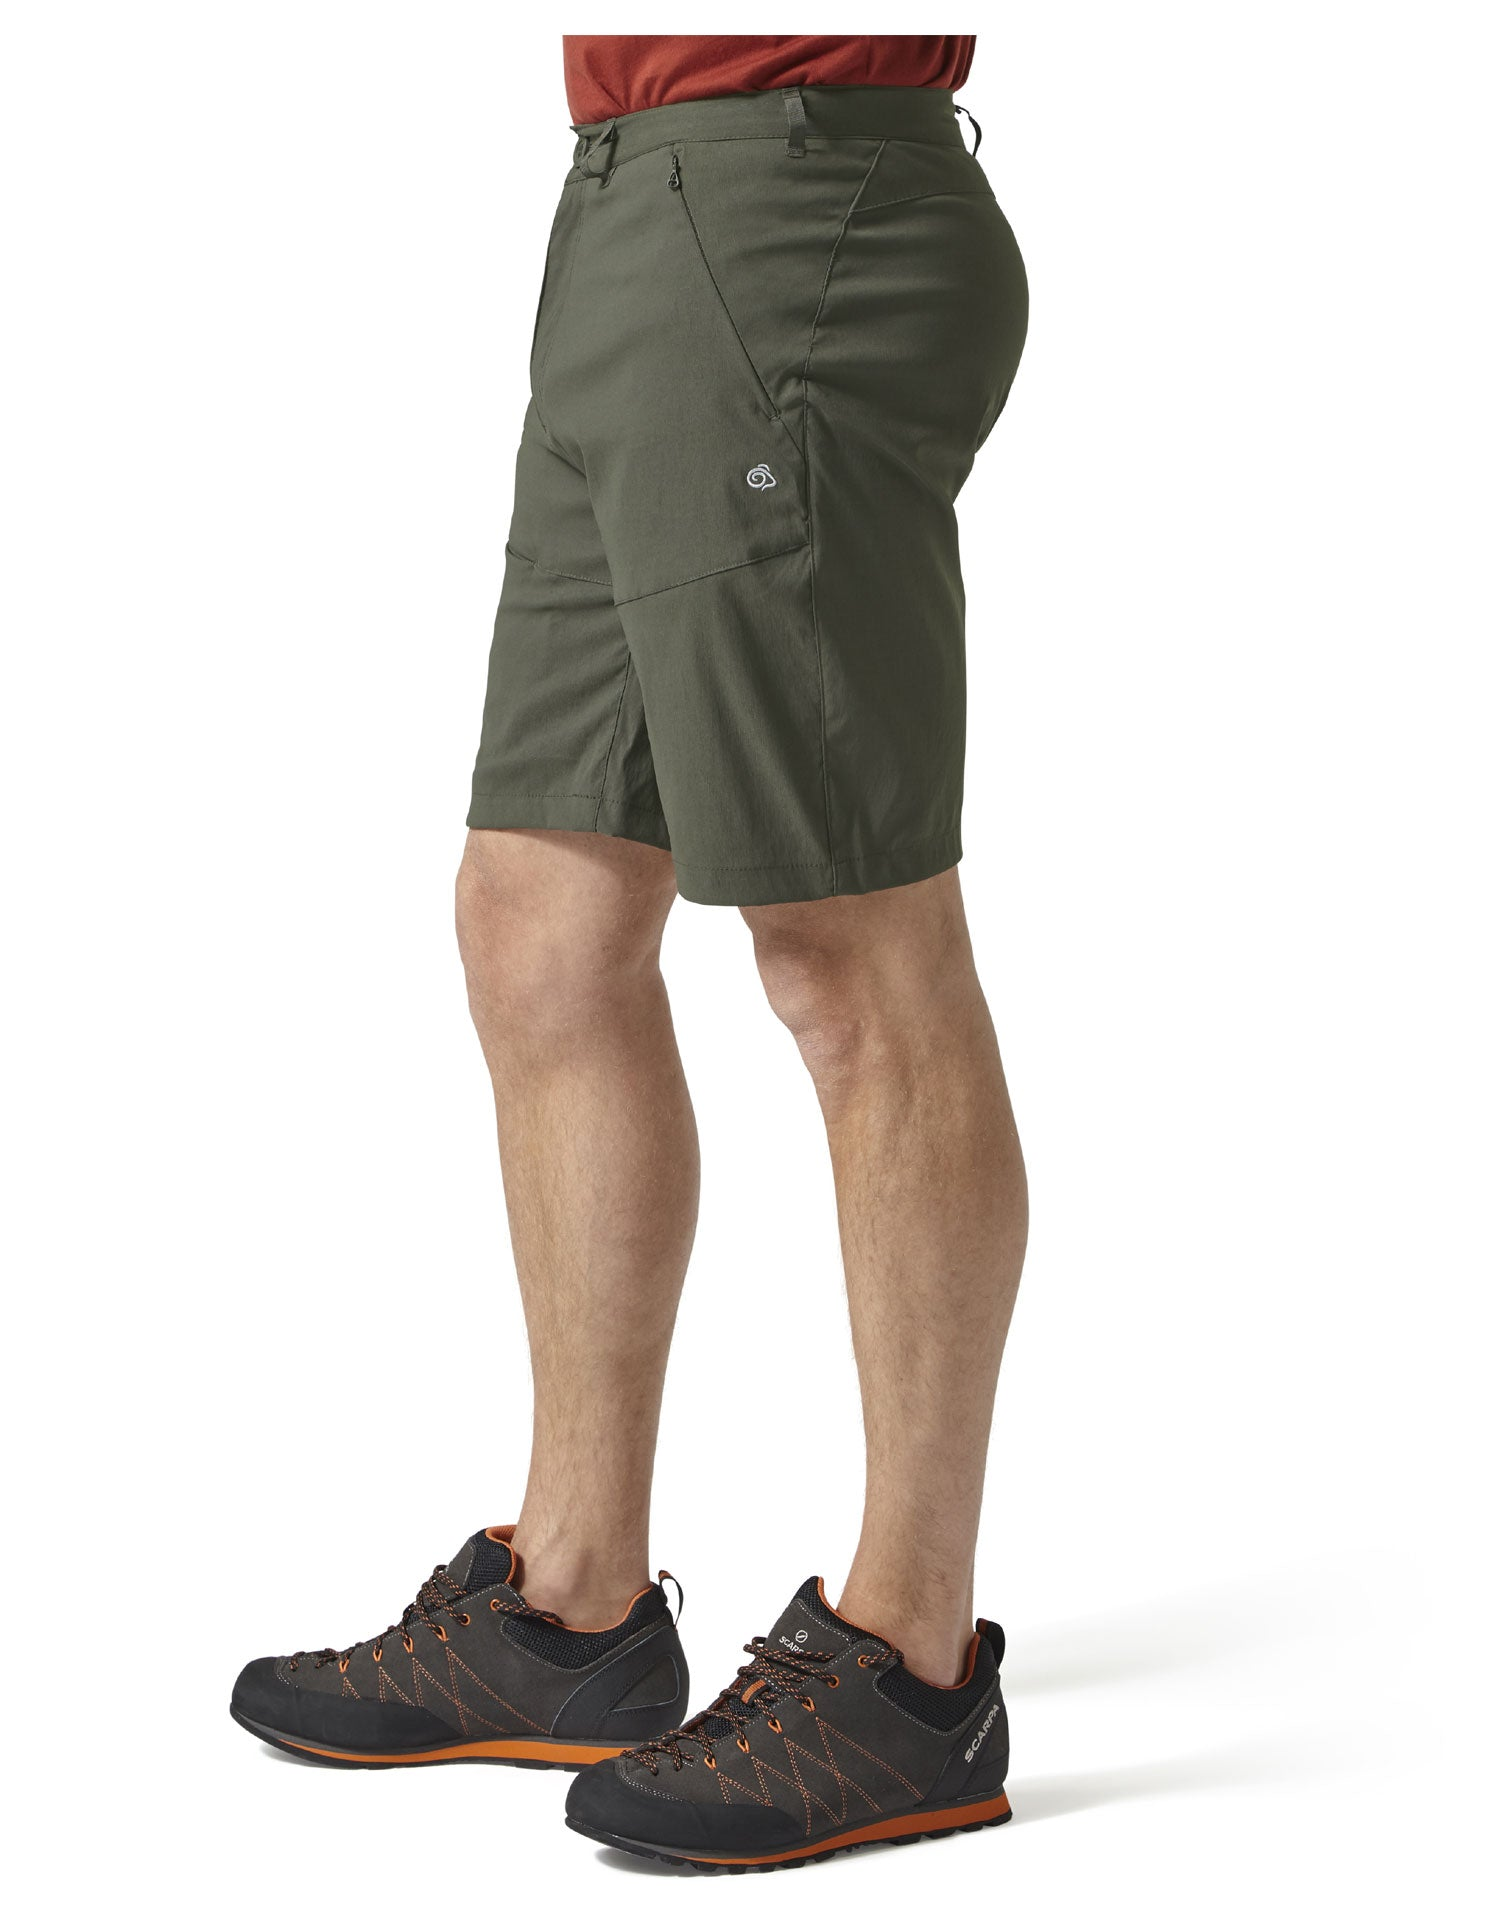 Khaki green Men's Kiwi Pro Shorts by Craghoppers